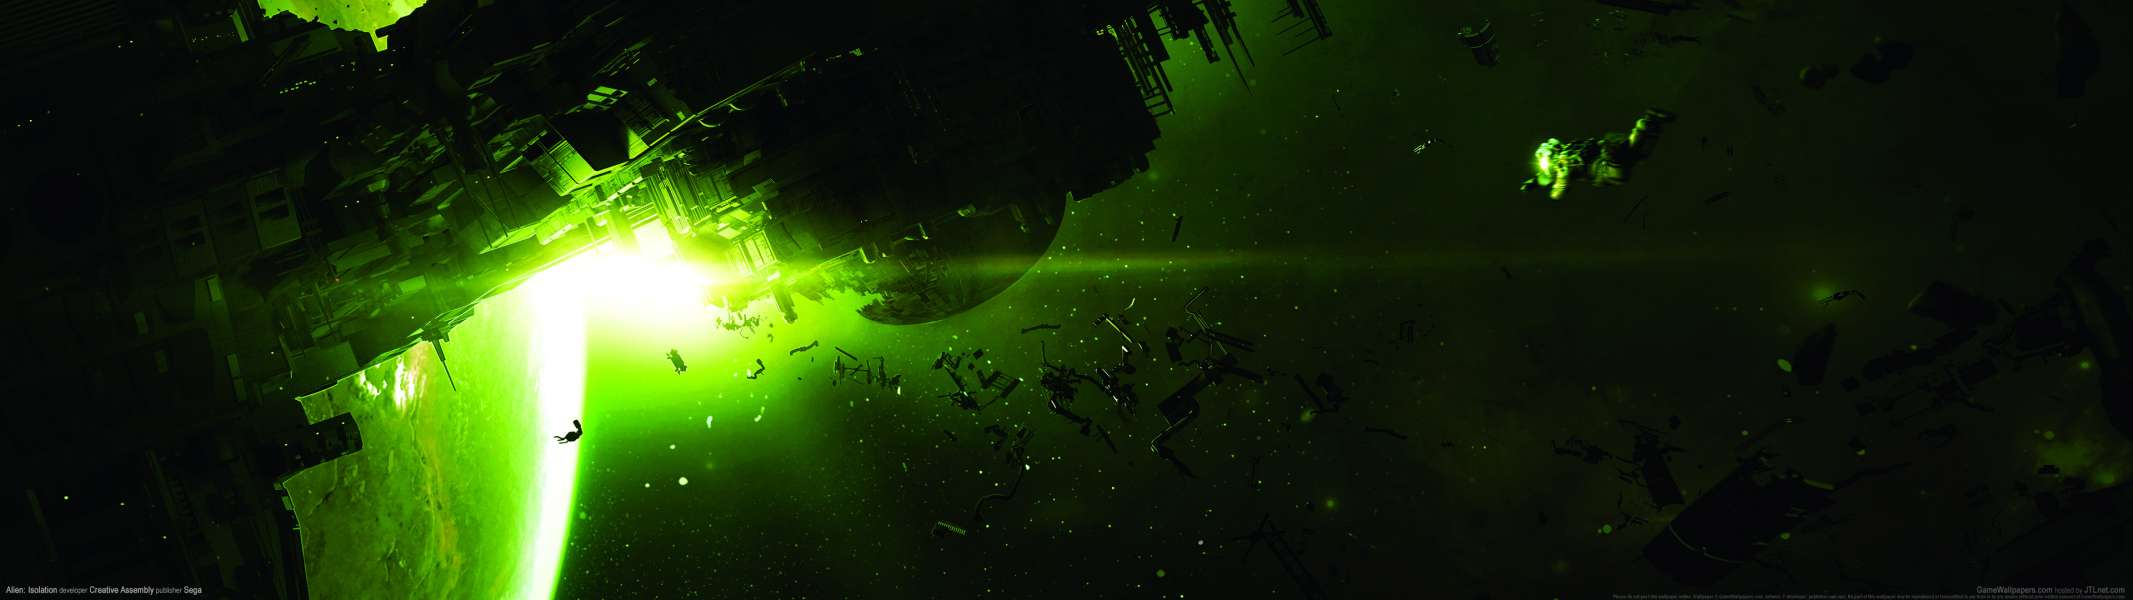 Alien: Isolation dual screen wallpaper or background